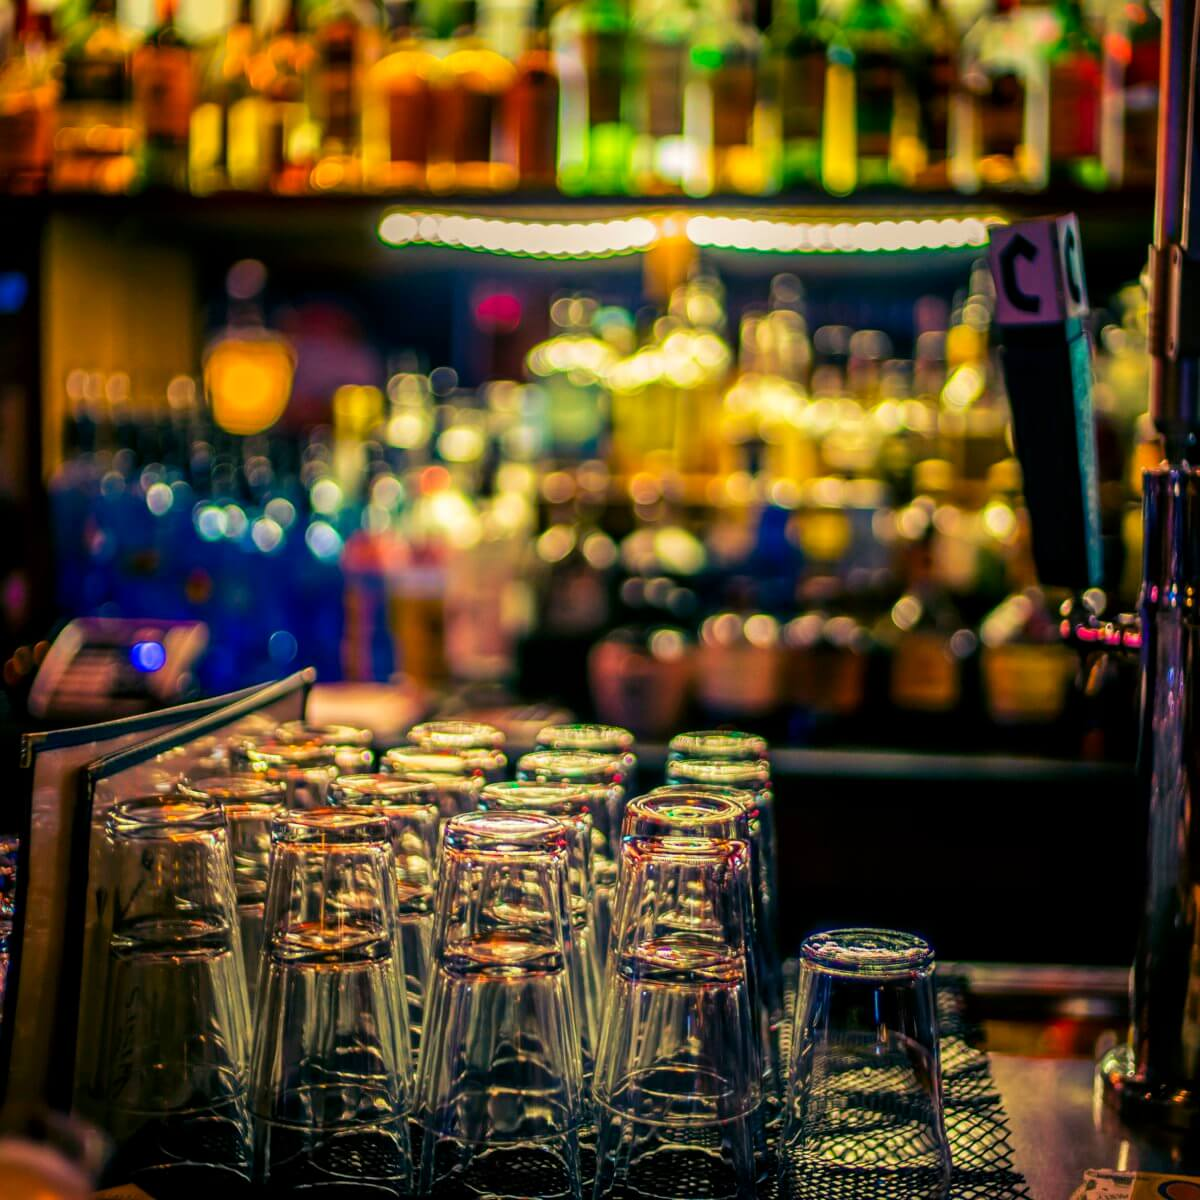 Will You Serve Alcohol at Your Restaurant?